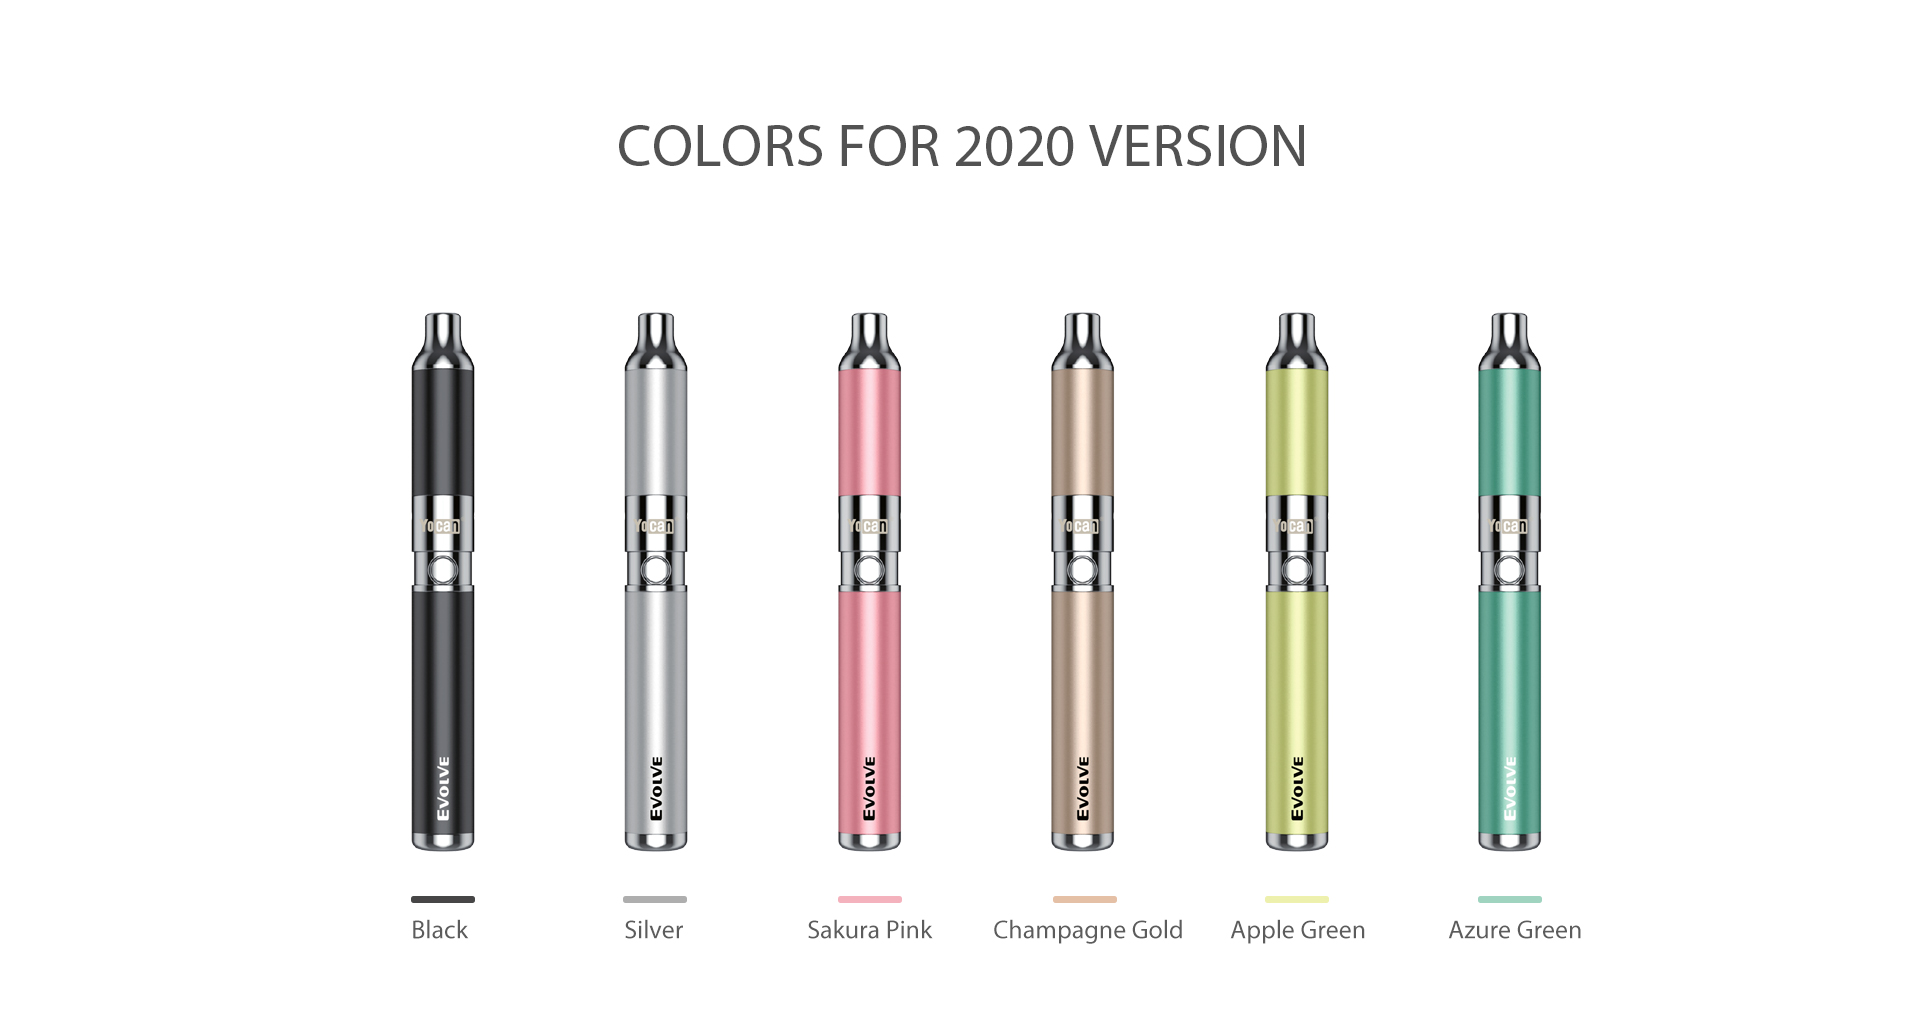 Yocan Evolve Vaporizer 2020 Version comes with 6 colors.